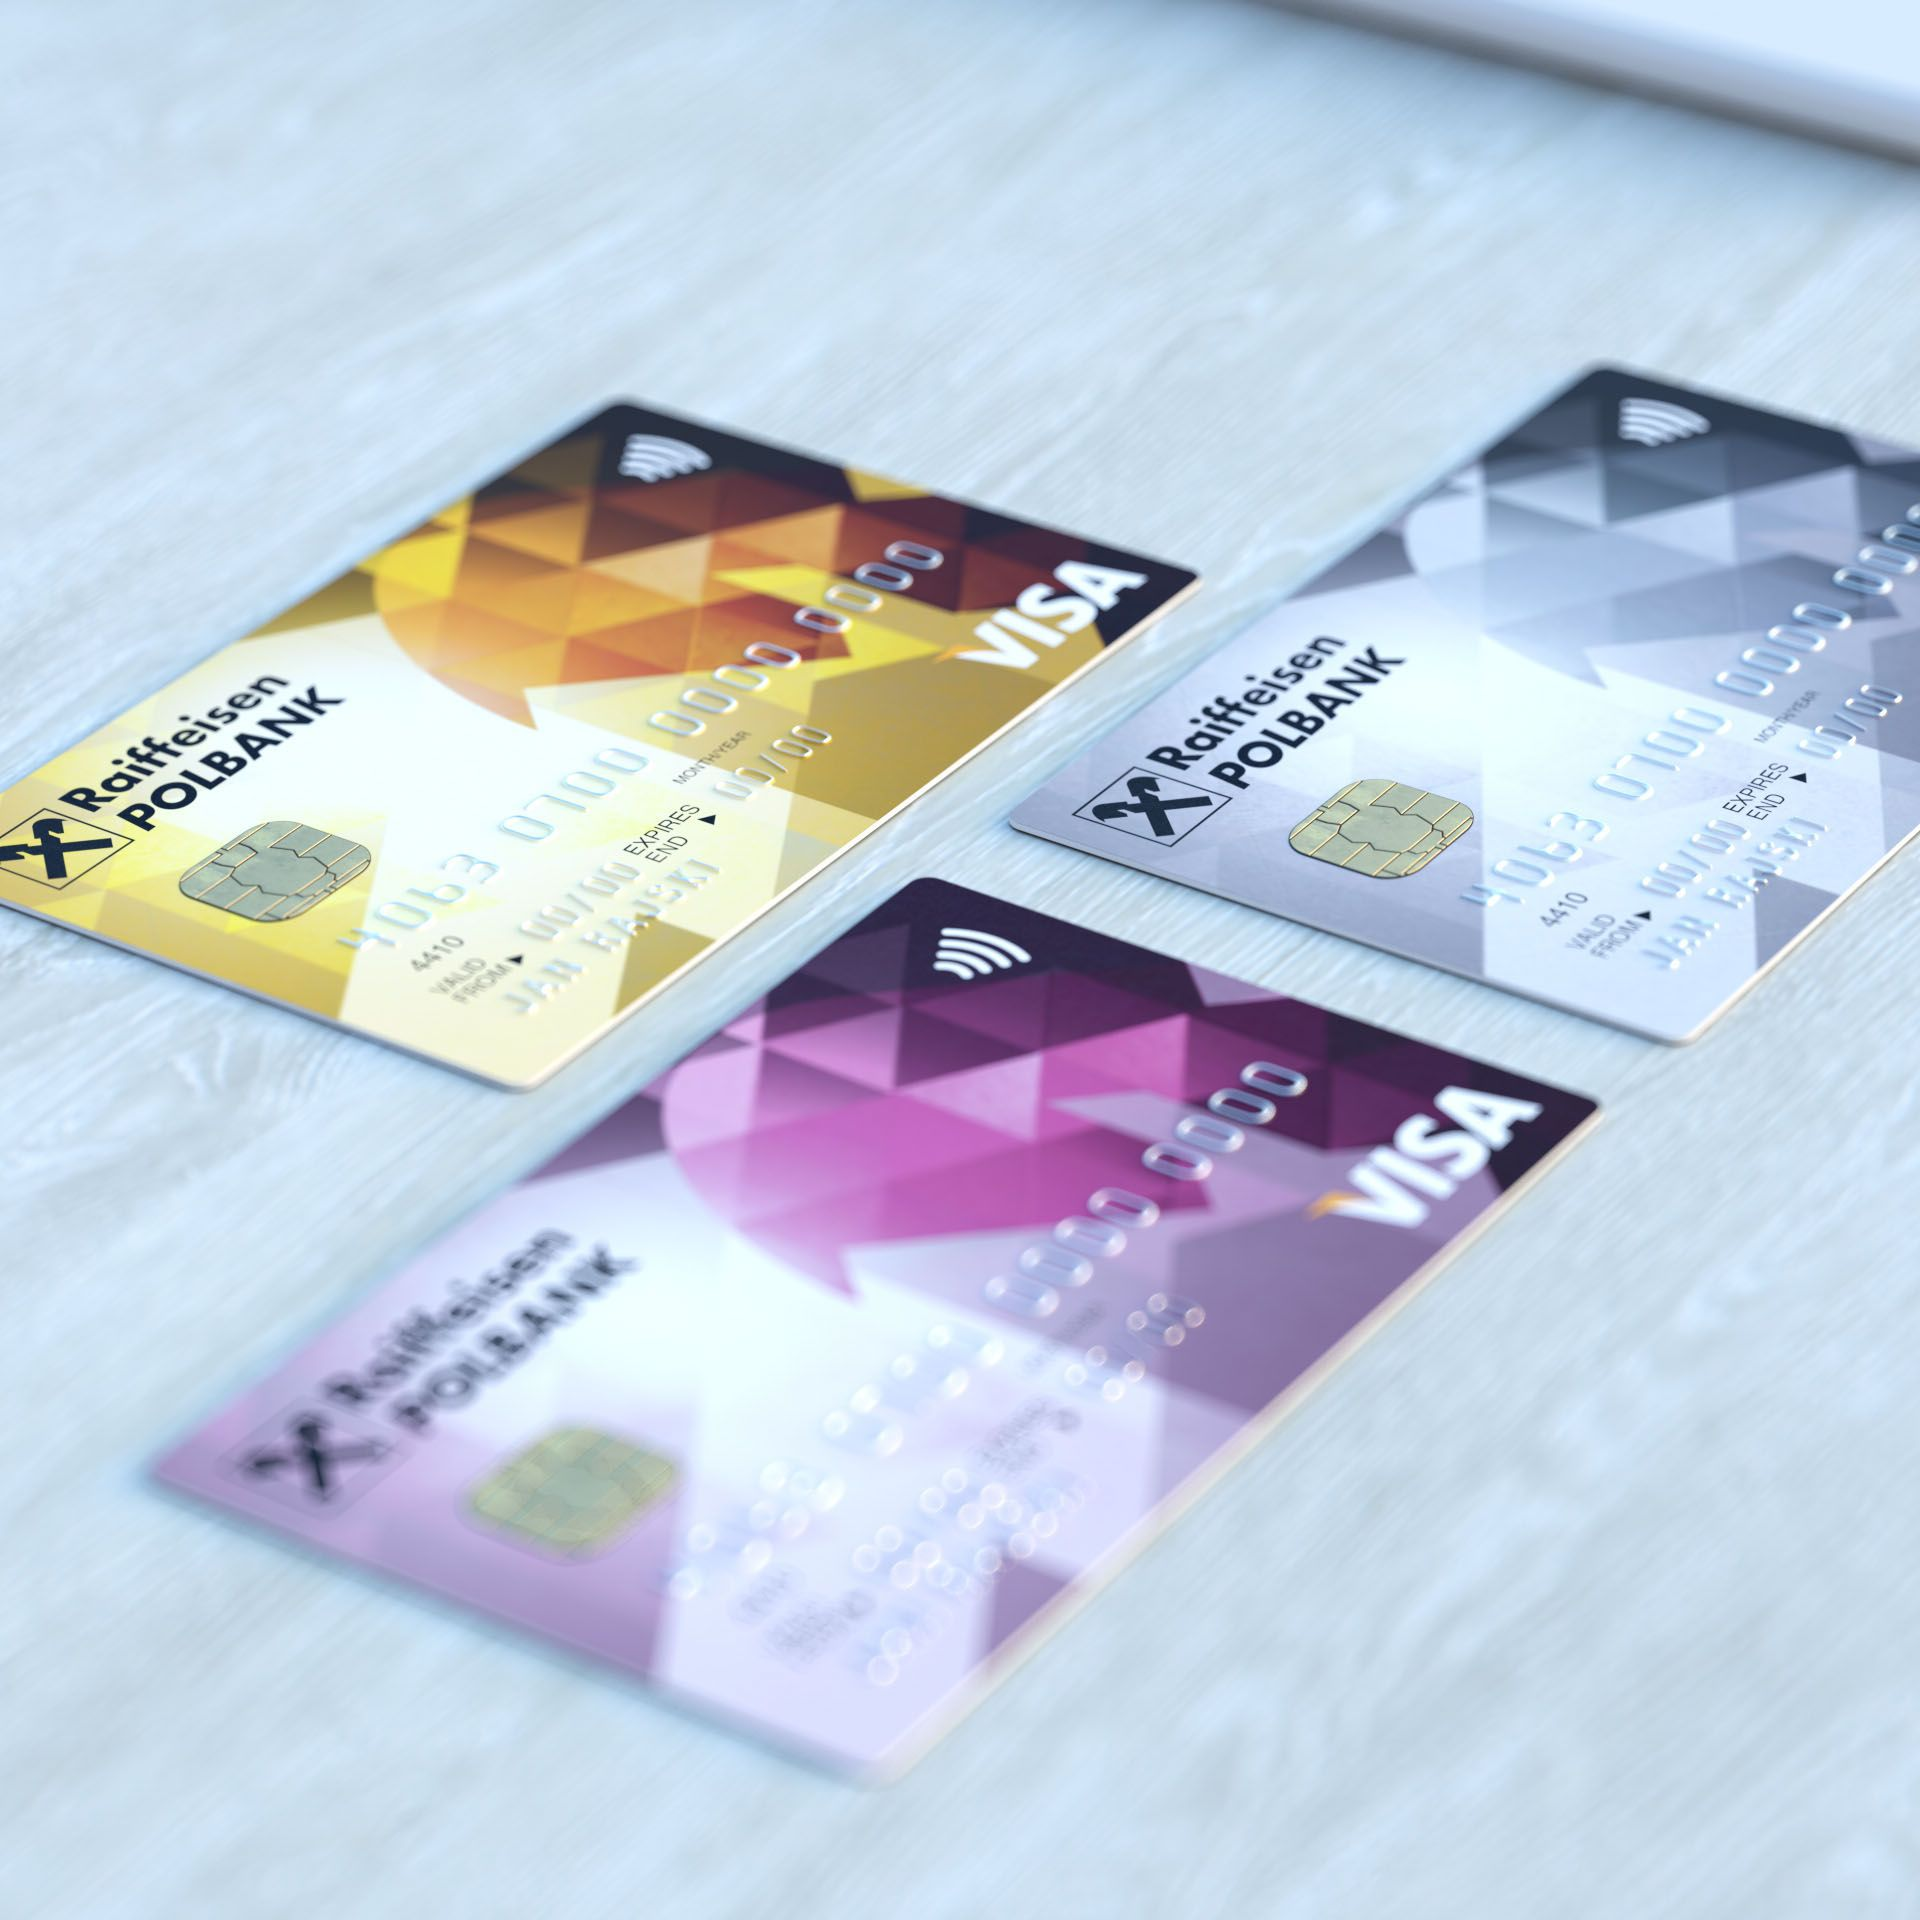 Credit and debit card projects for raiffeisen polbank